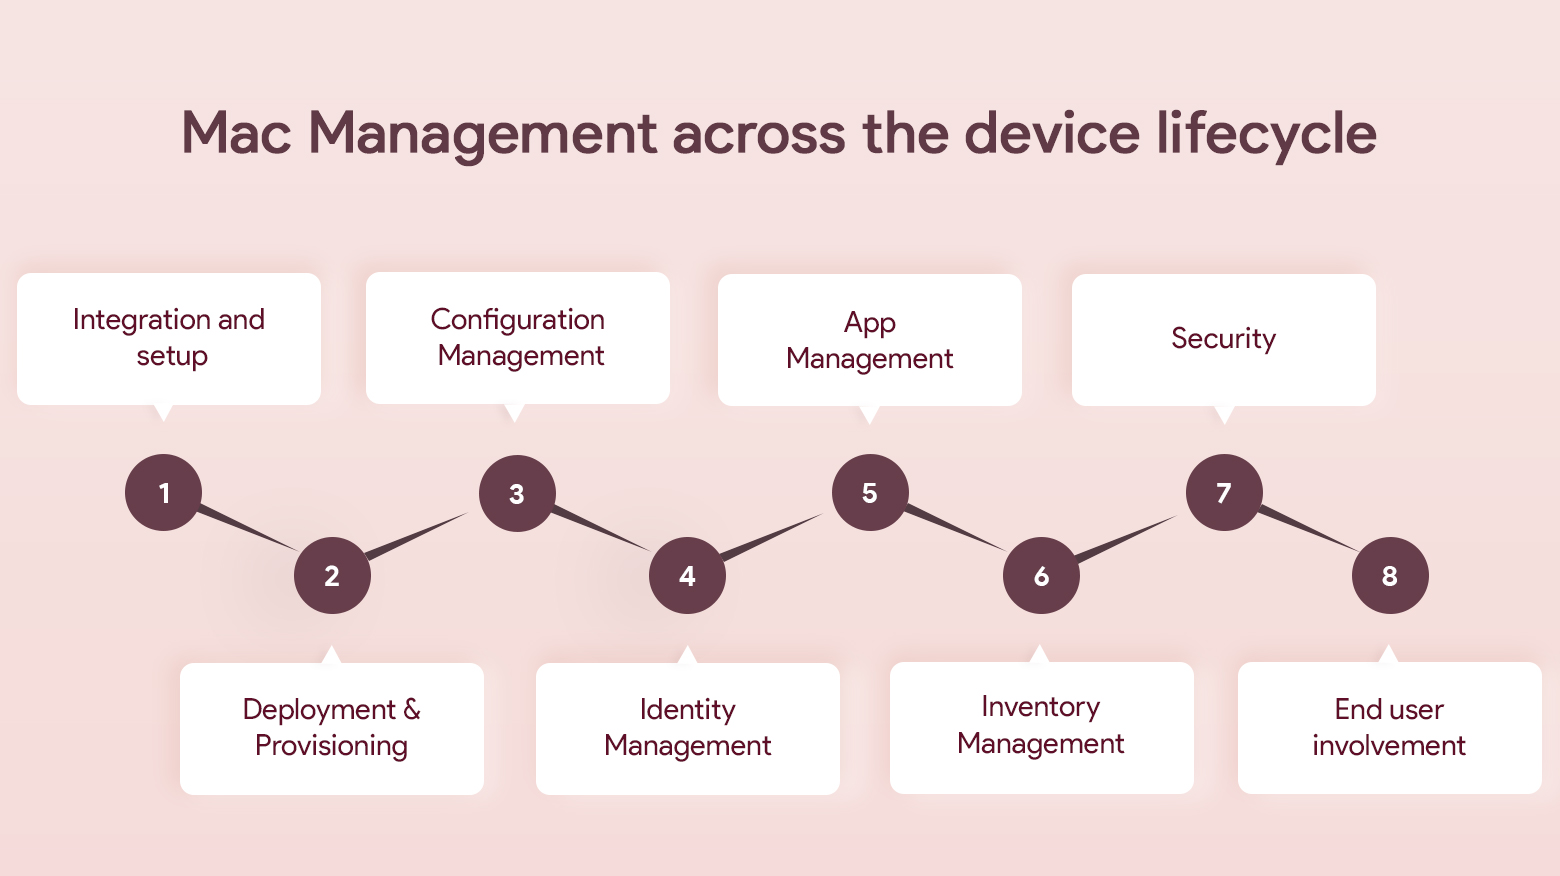 Mac Management across the device lifecycle